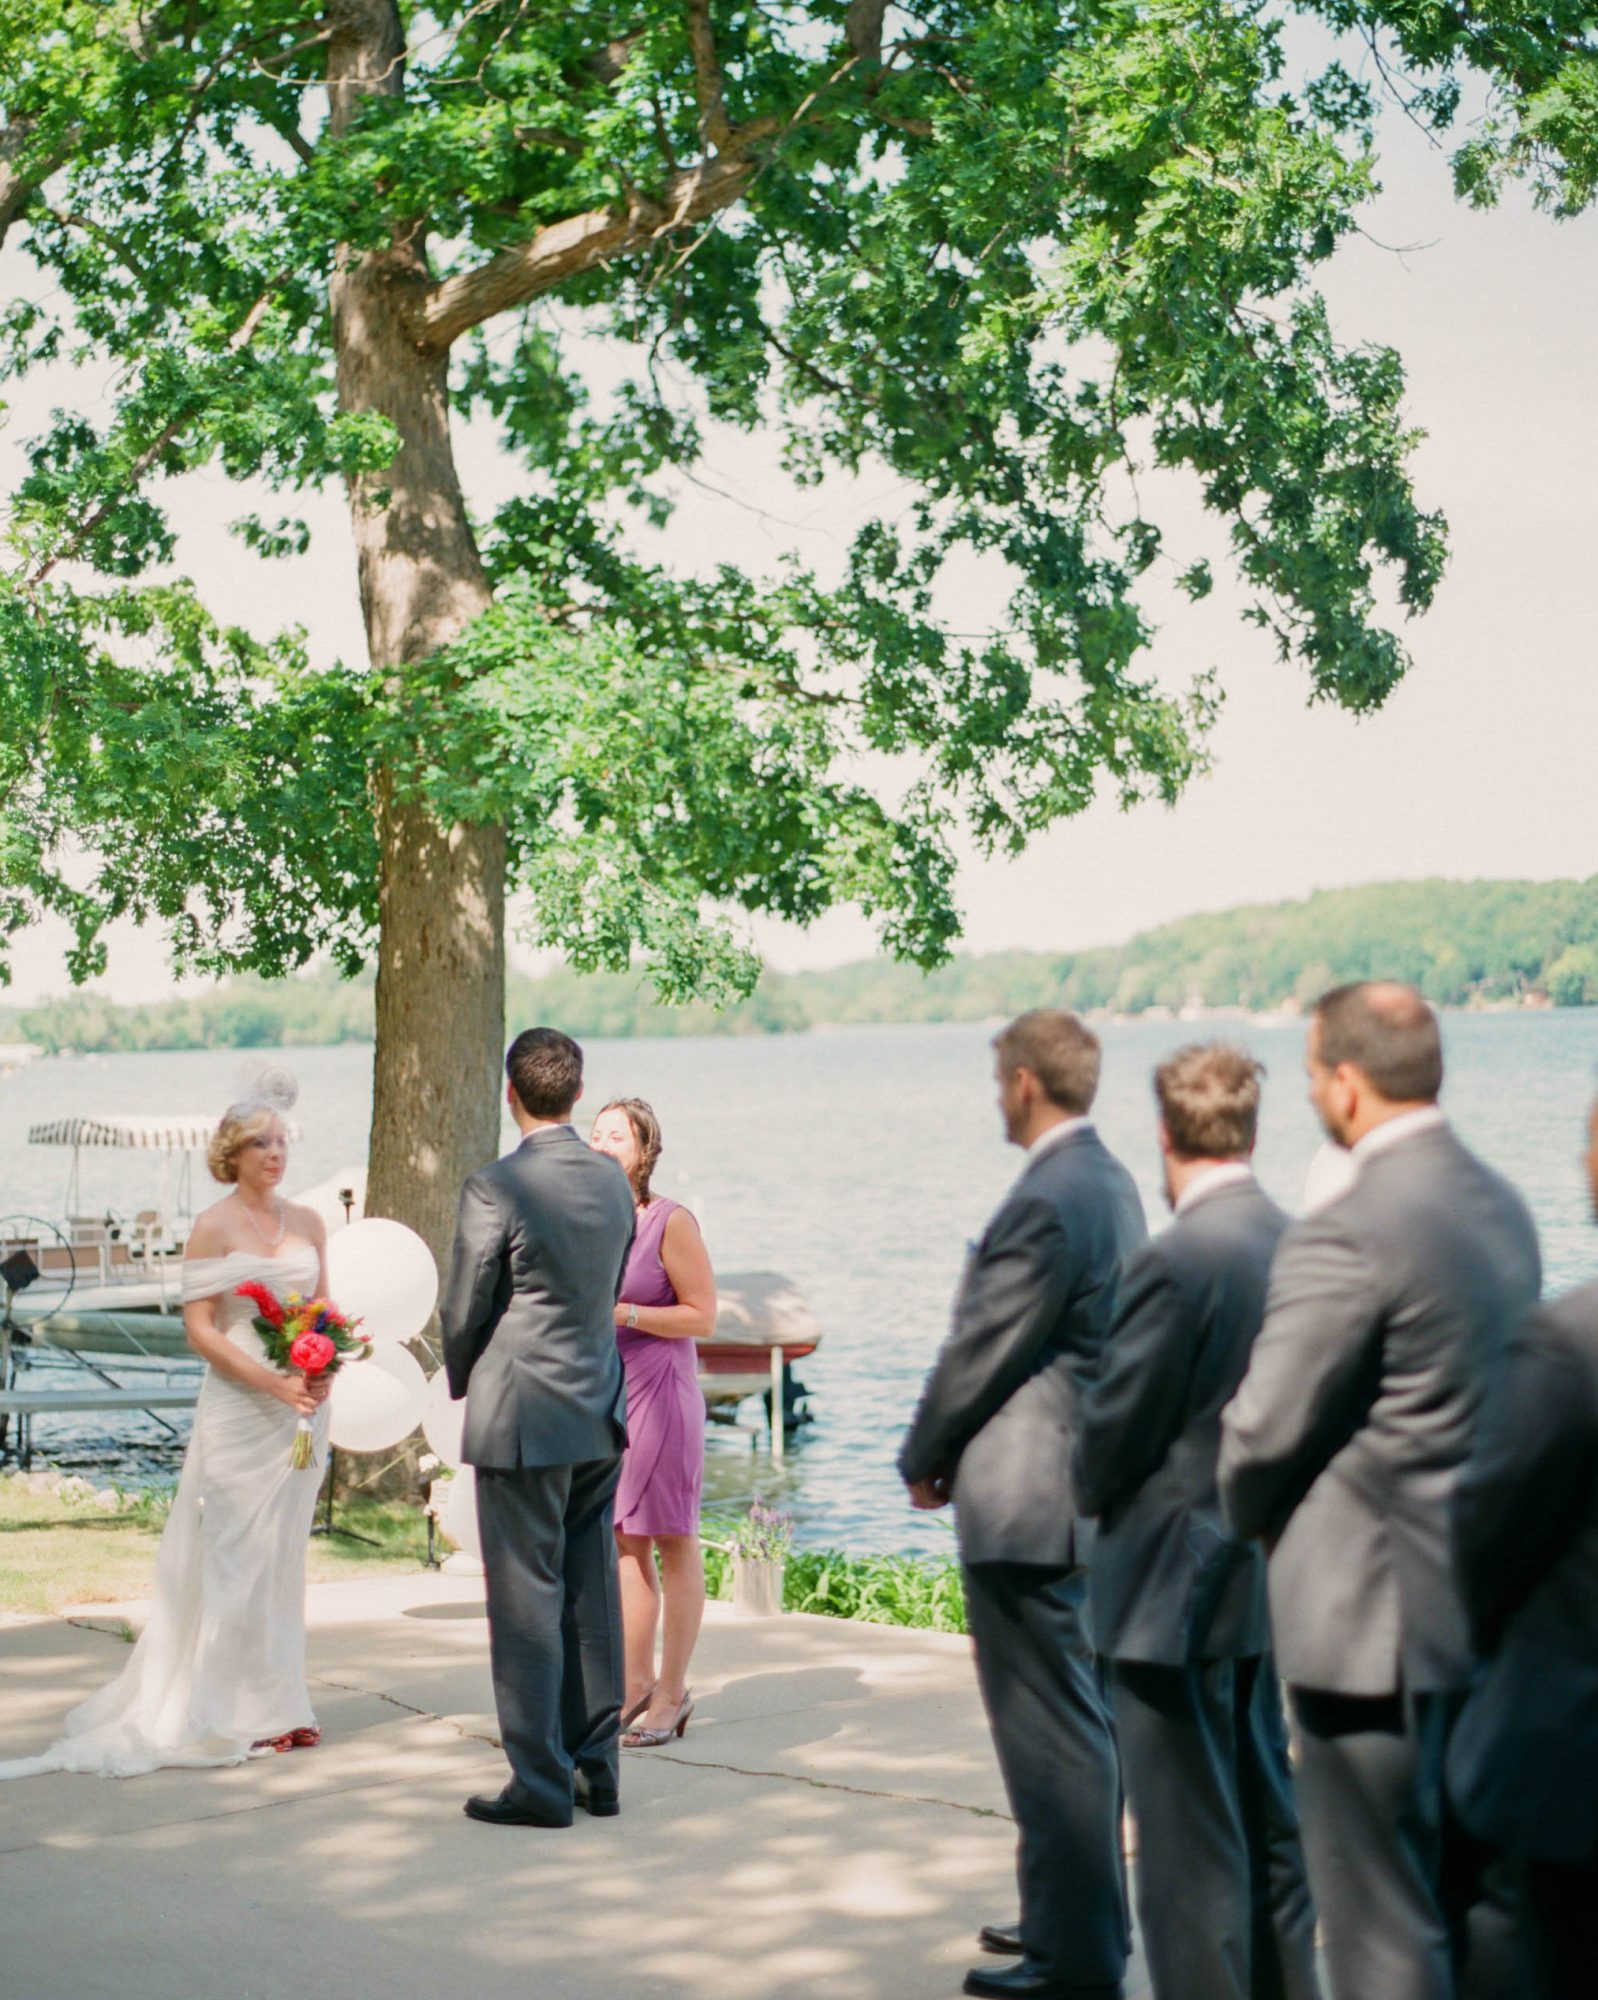 Ceremony on the Water